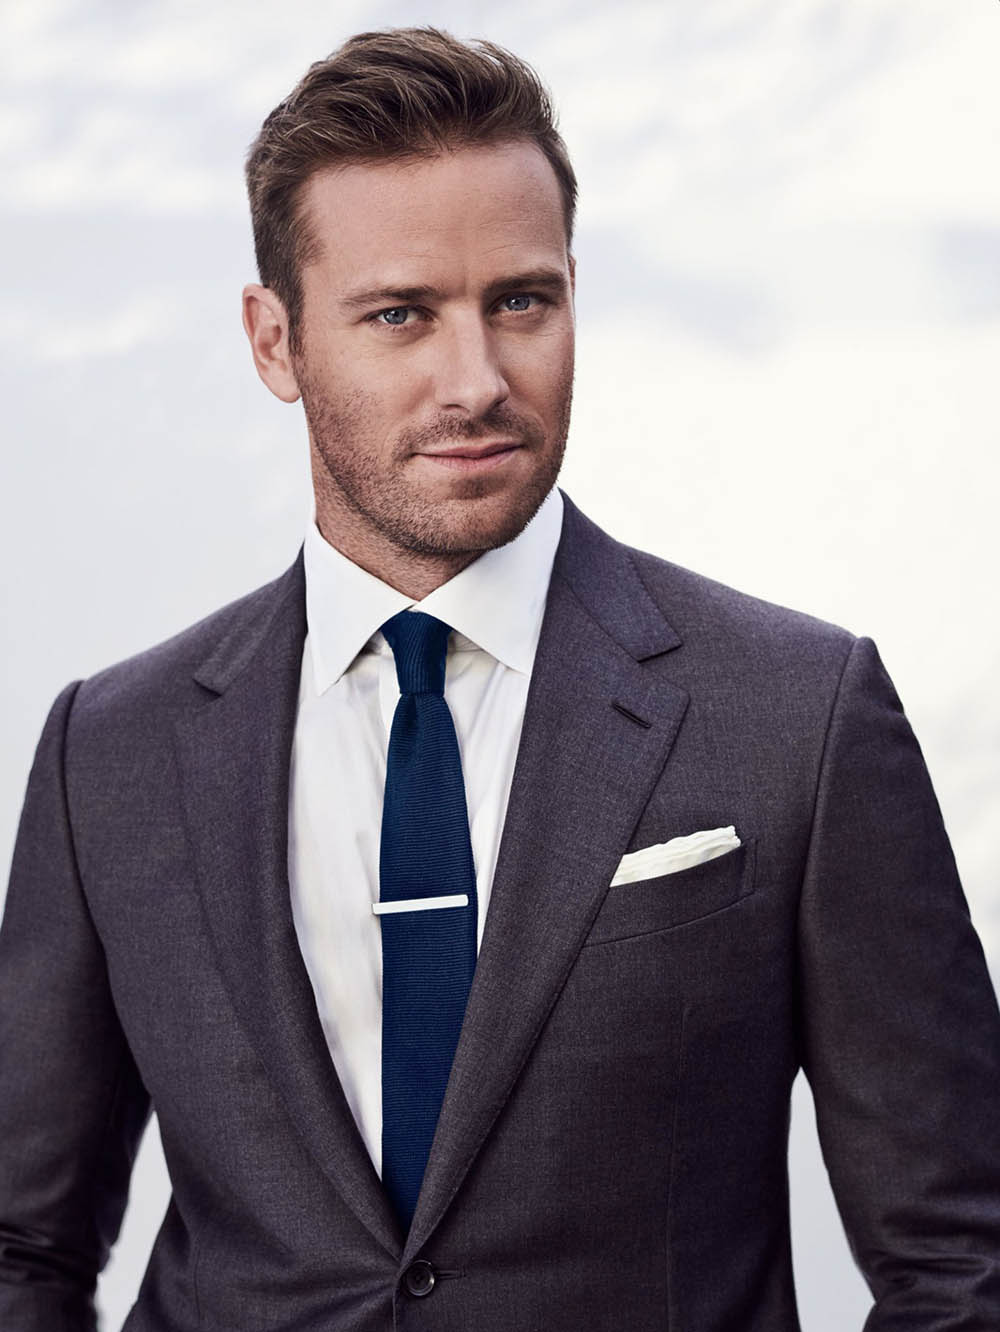 Armie Hammer covers British GQ March 2019 by Eric Ray Davidson